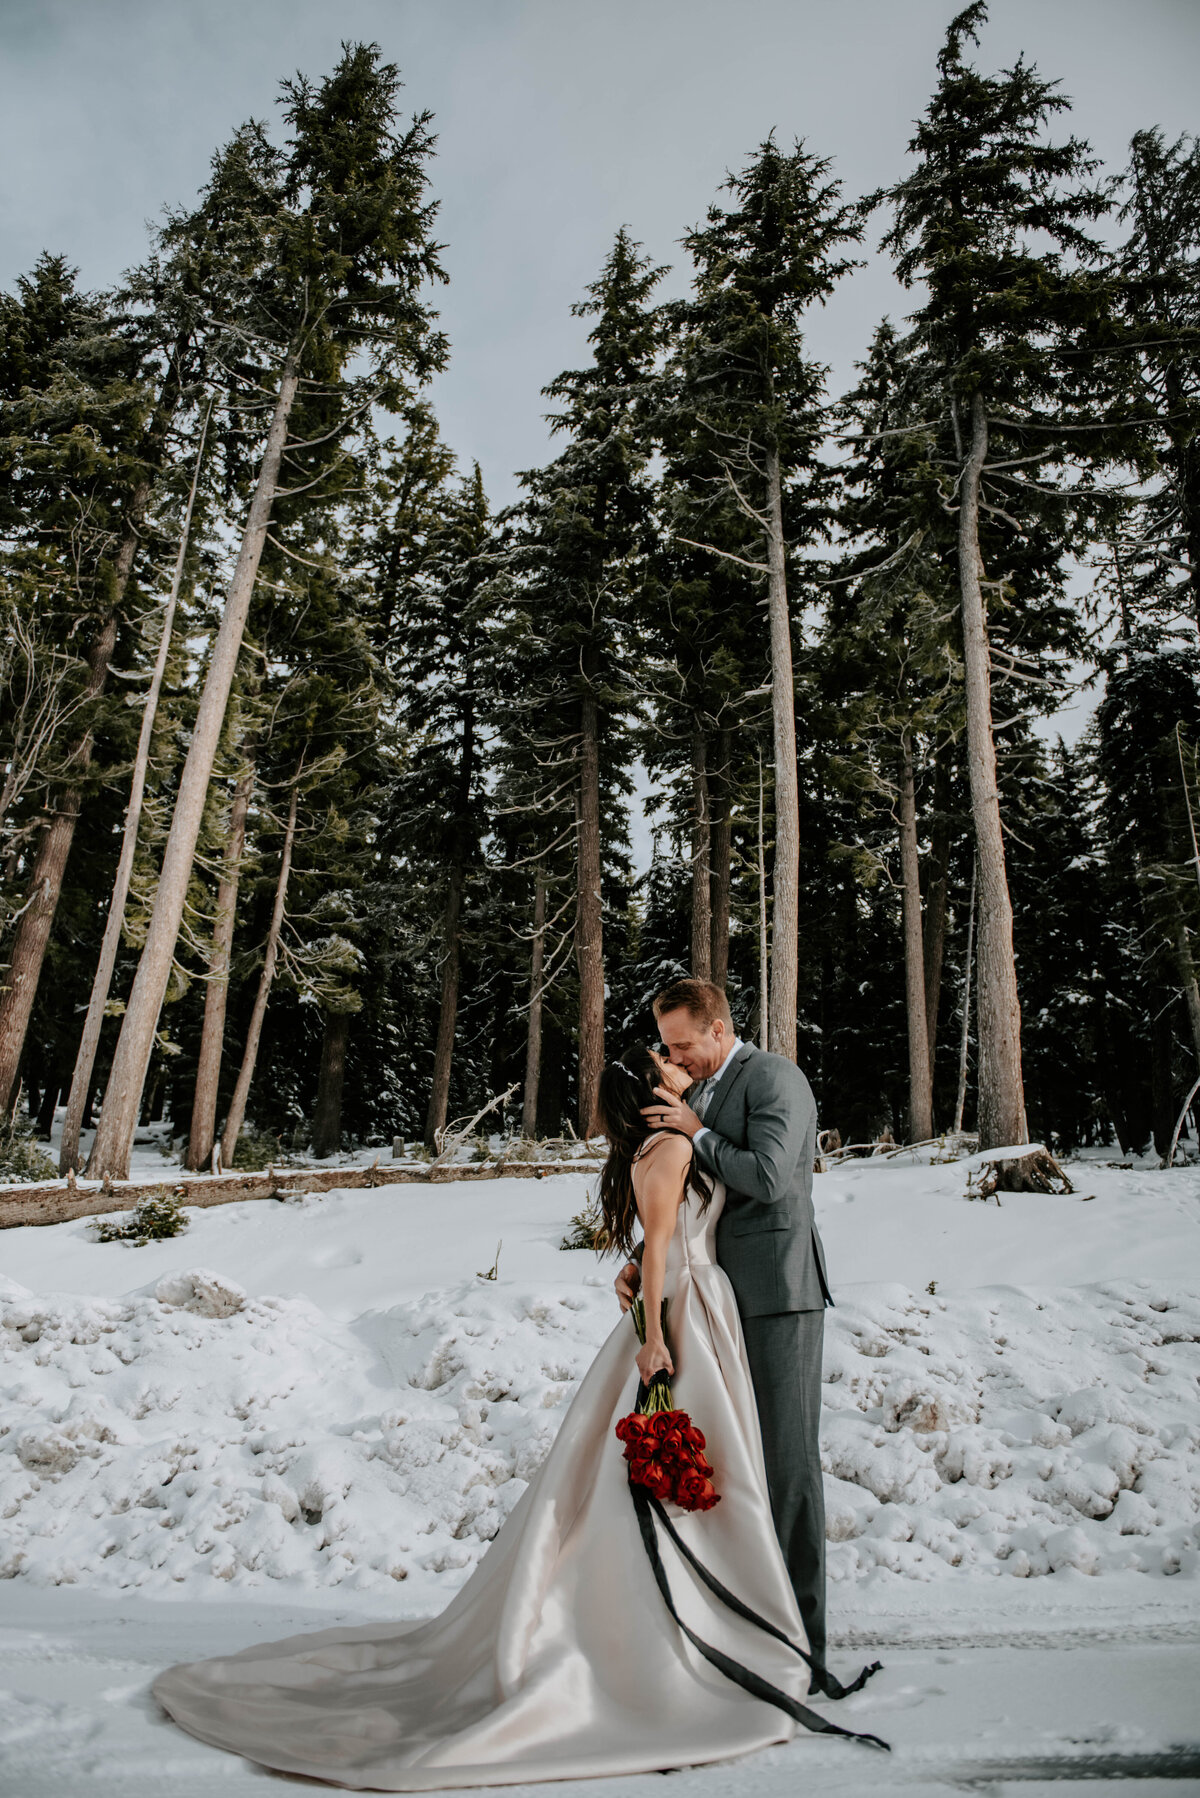 mt-bachelor-snow-winter-elopement-bend-oregon-wedding-photographer-2182